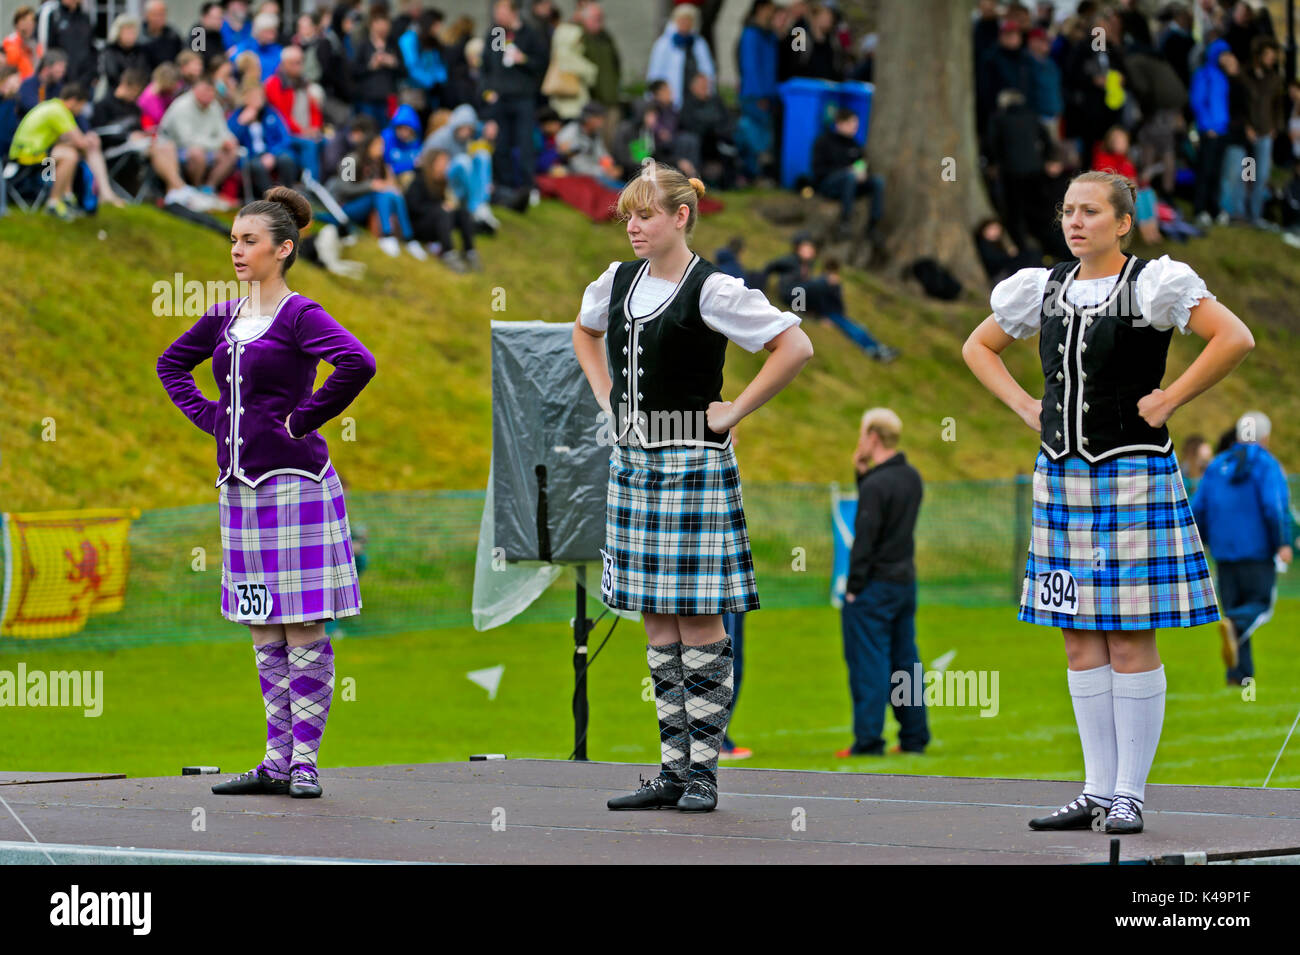 Girls In Kilted Skirts Performing A Highland Dance, Ceres, Scotland, United Kingdom - Stock Image